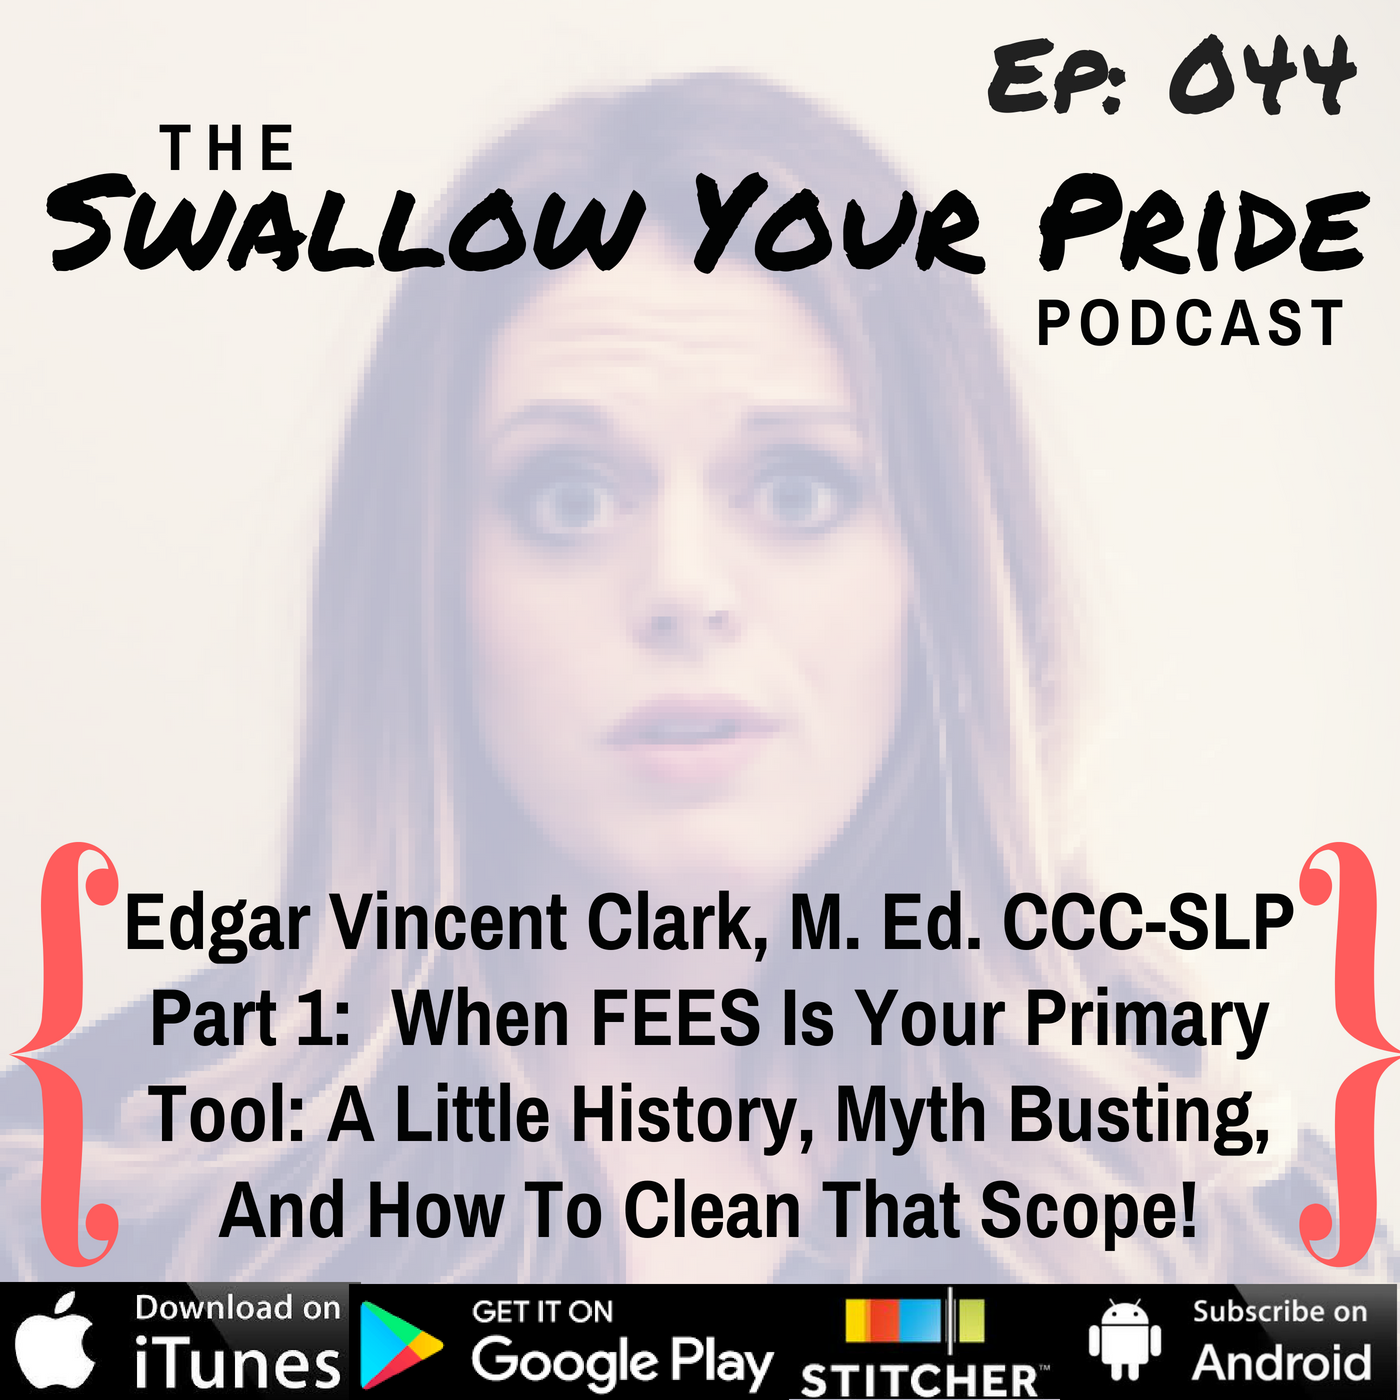 044 – Edgar Vincent Clark, M. Ed. CCC-SLP – When FEES Is Your Primary Tool:  A Little History, Myth Busting, And How To Clean That Scope!